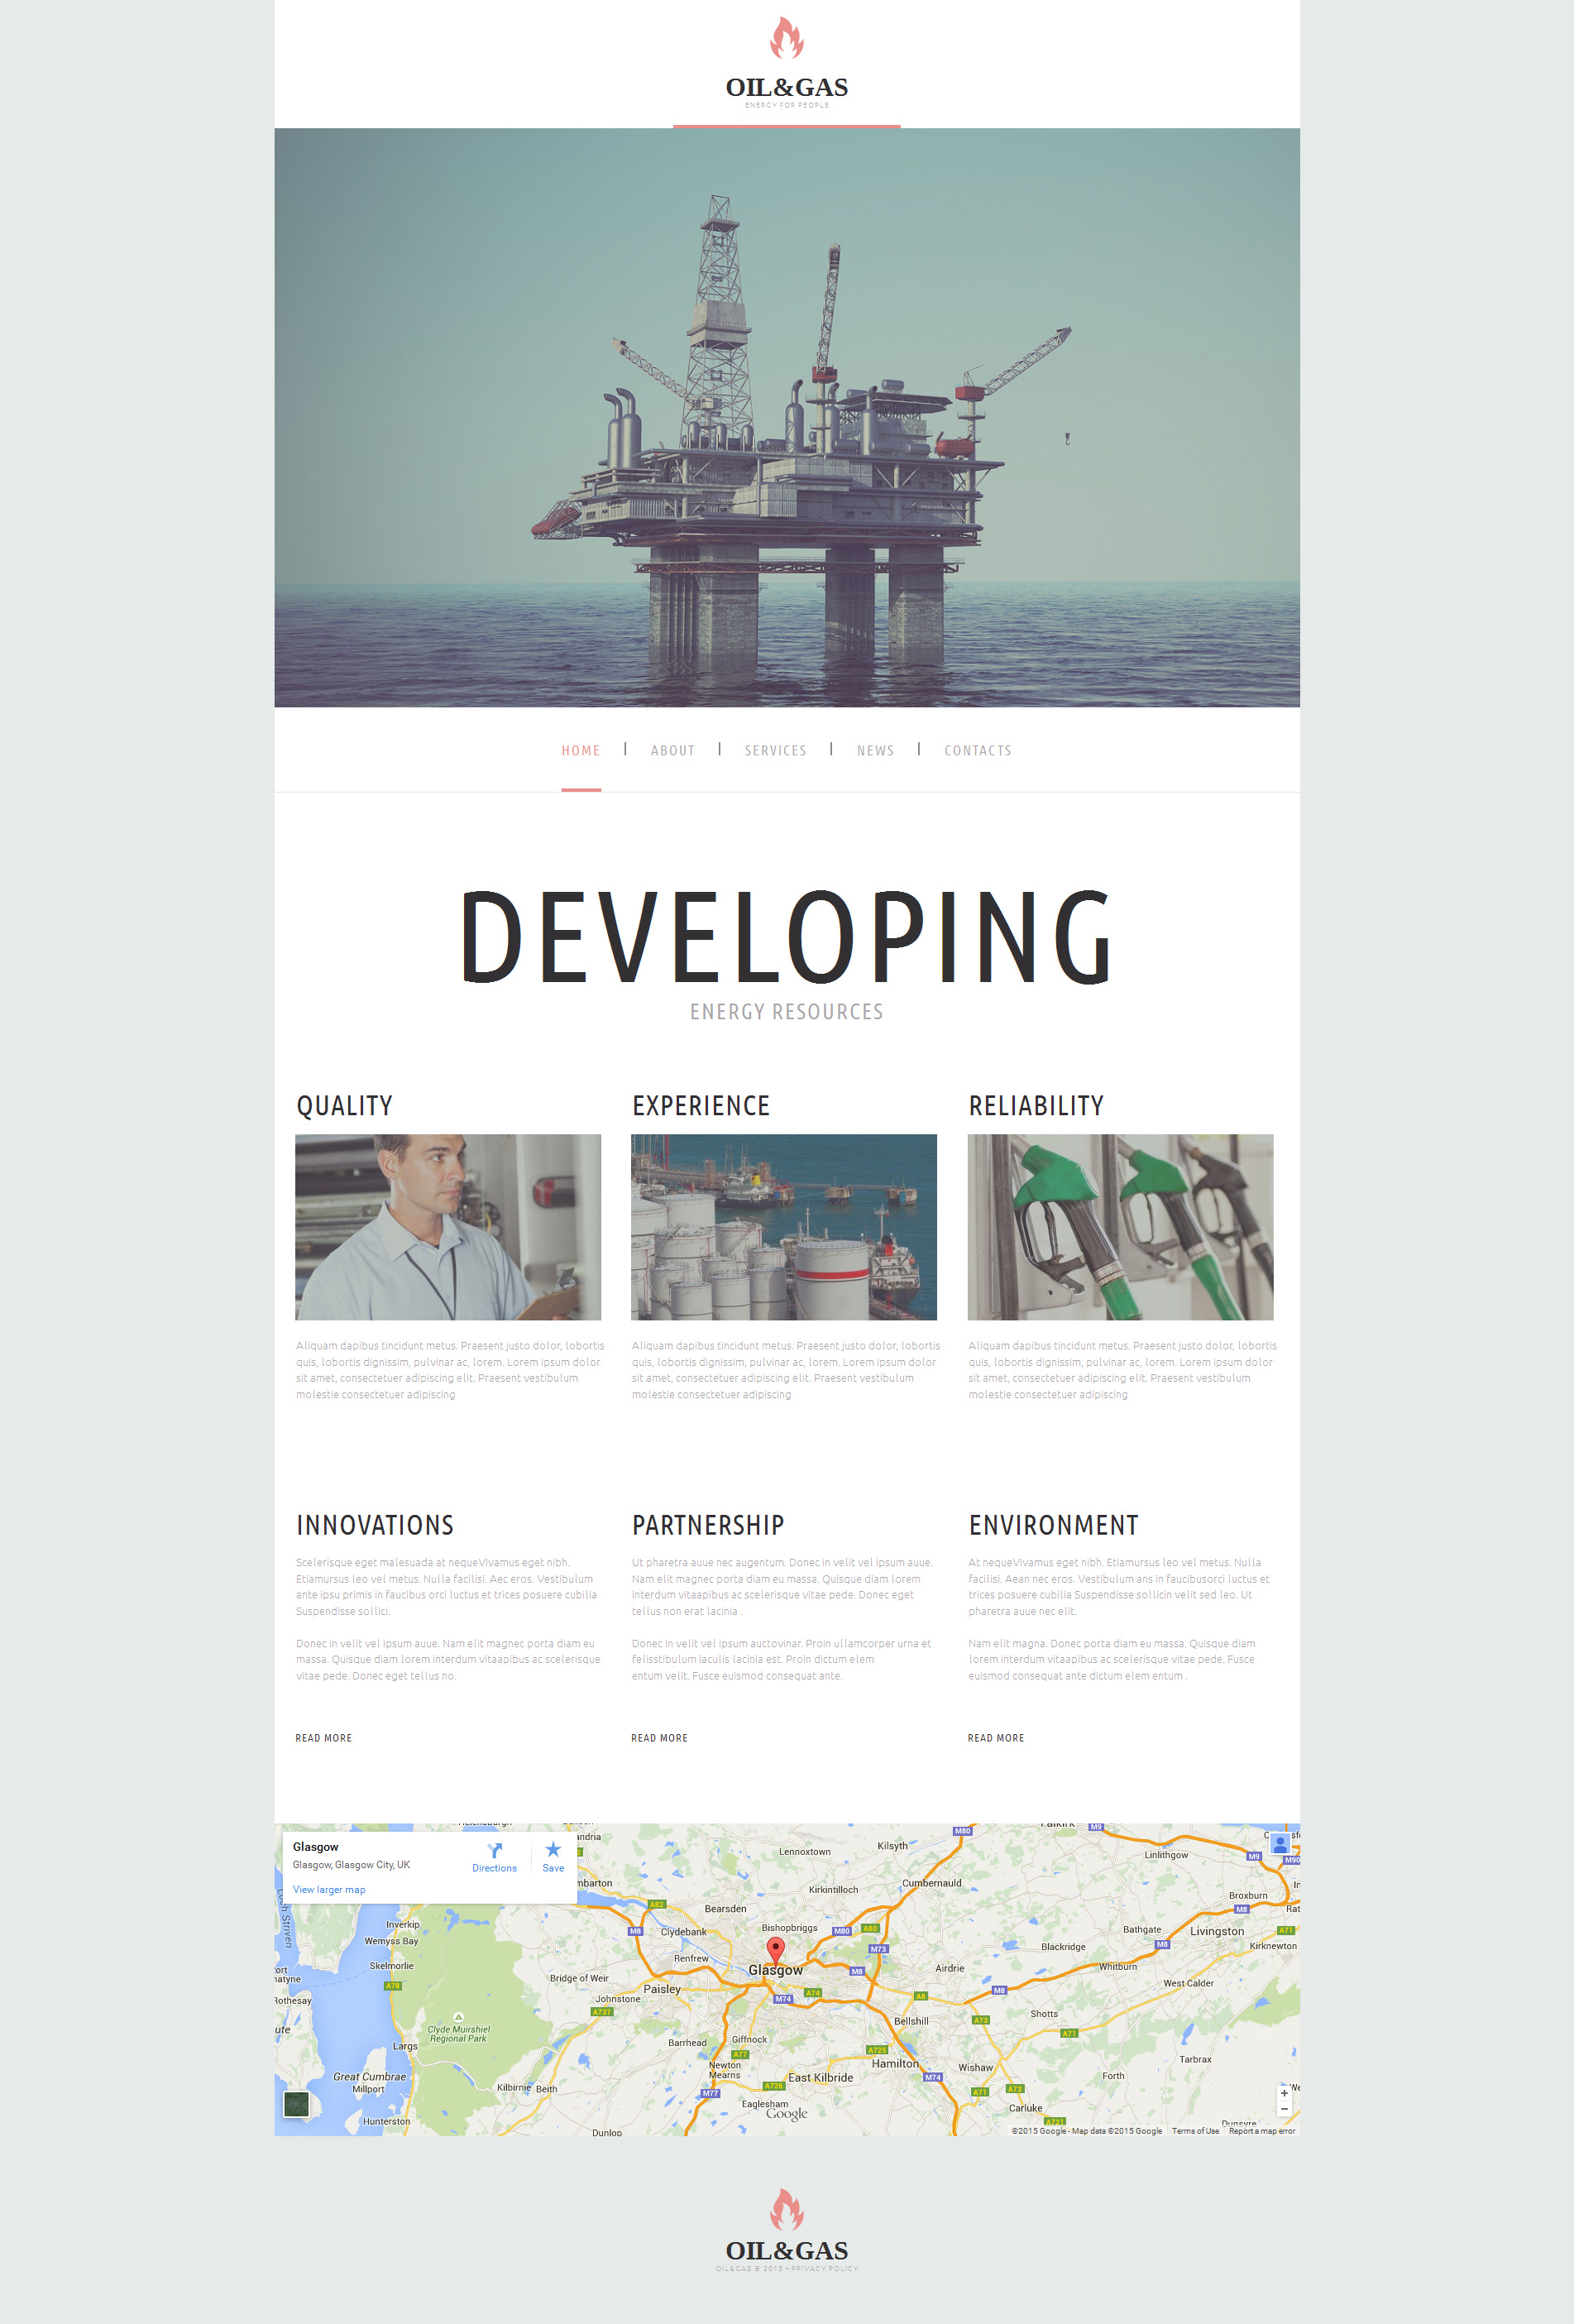 The Oil And Gas Moto CMS 3 Templates Design 53733, one of the best Moto CMS 3 templates of its kind (industrial, most popular), also known as oil and gas Moto CMS 3 template, production Moto CMS 3 template, oiltrade Moto CMS 3 template, trade company Moto CMS 3 template, deliver Moto CMS 3 template, distributor Moto CMS 3 template, distribution Moto CMS 3 template, truck Moto CMS 3 template, black gold Moto CMS 3 template, sell Moto CMS 3 template, supply Moto CMS 3 template, gasoline and related with oil and gas, production, oiltrade, trade company, deliver, distributor, distribution, truck, black gold, sell, supply, gasoline, etc.